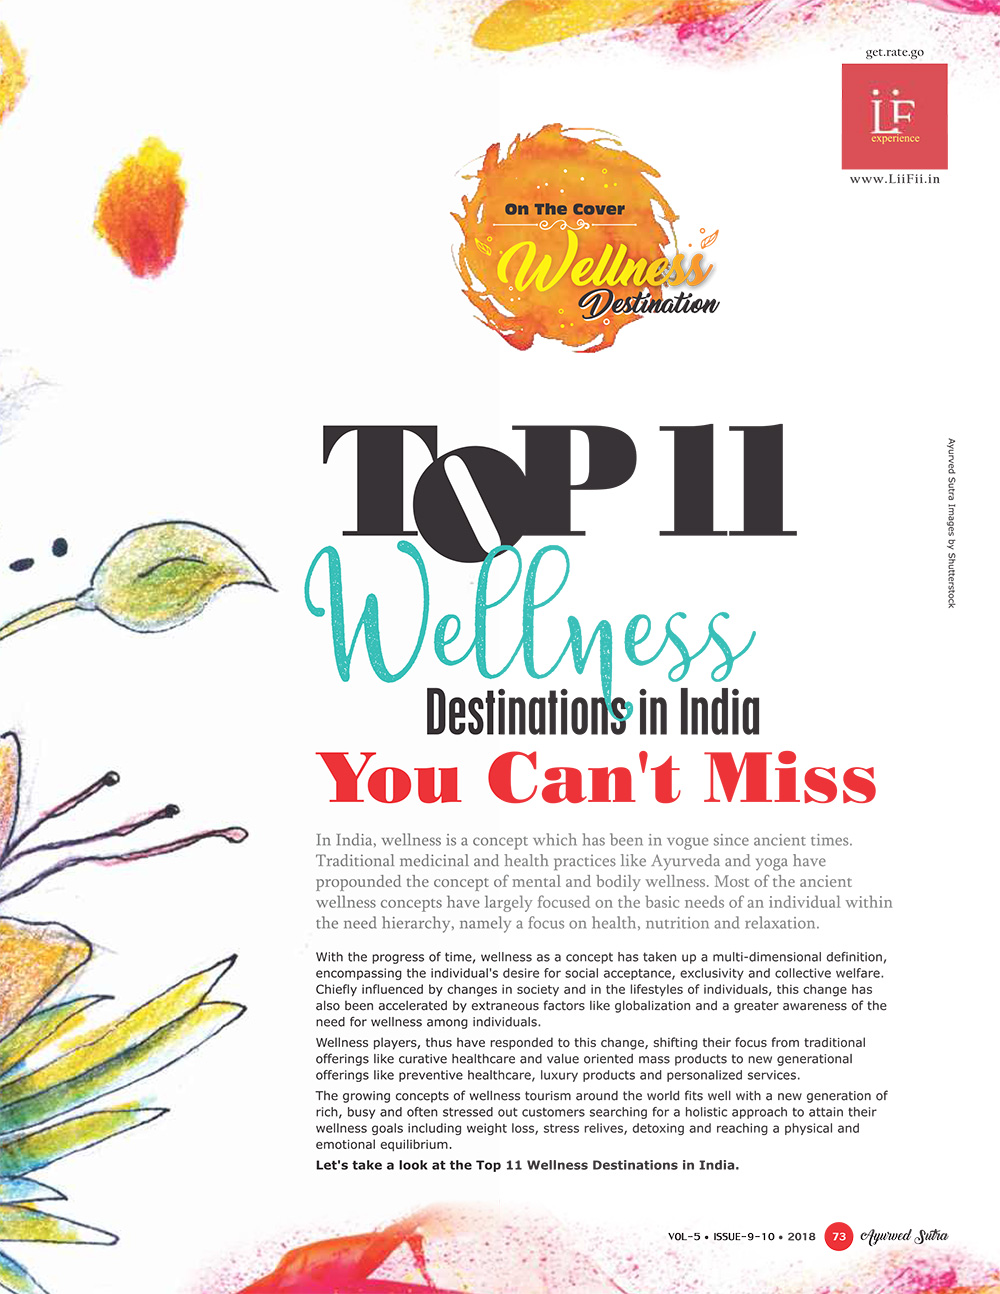 Ayurvedsutra Vol 05 issue 09 10 75 - Top 11 Wellness Destinations in India, You can't miss